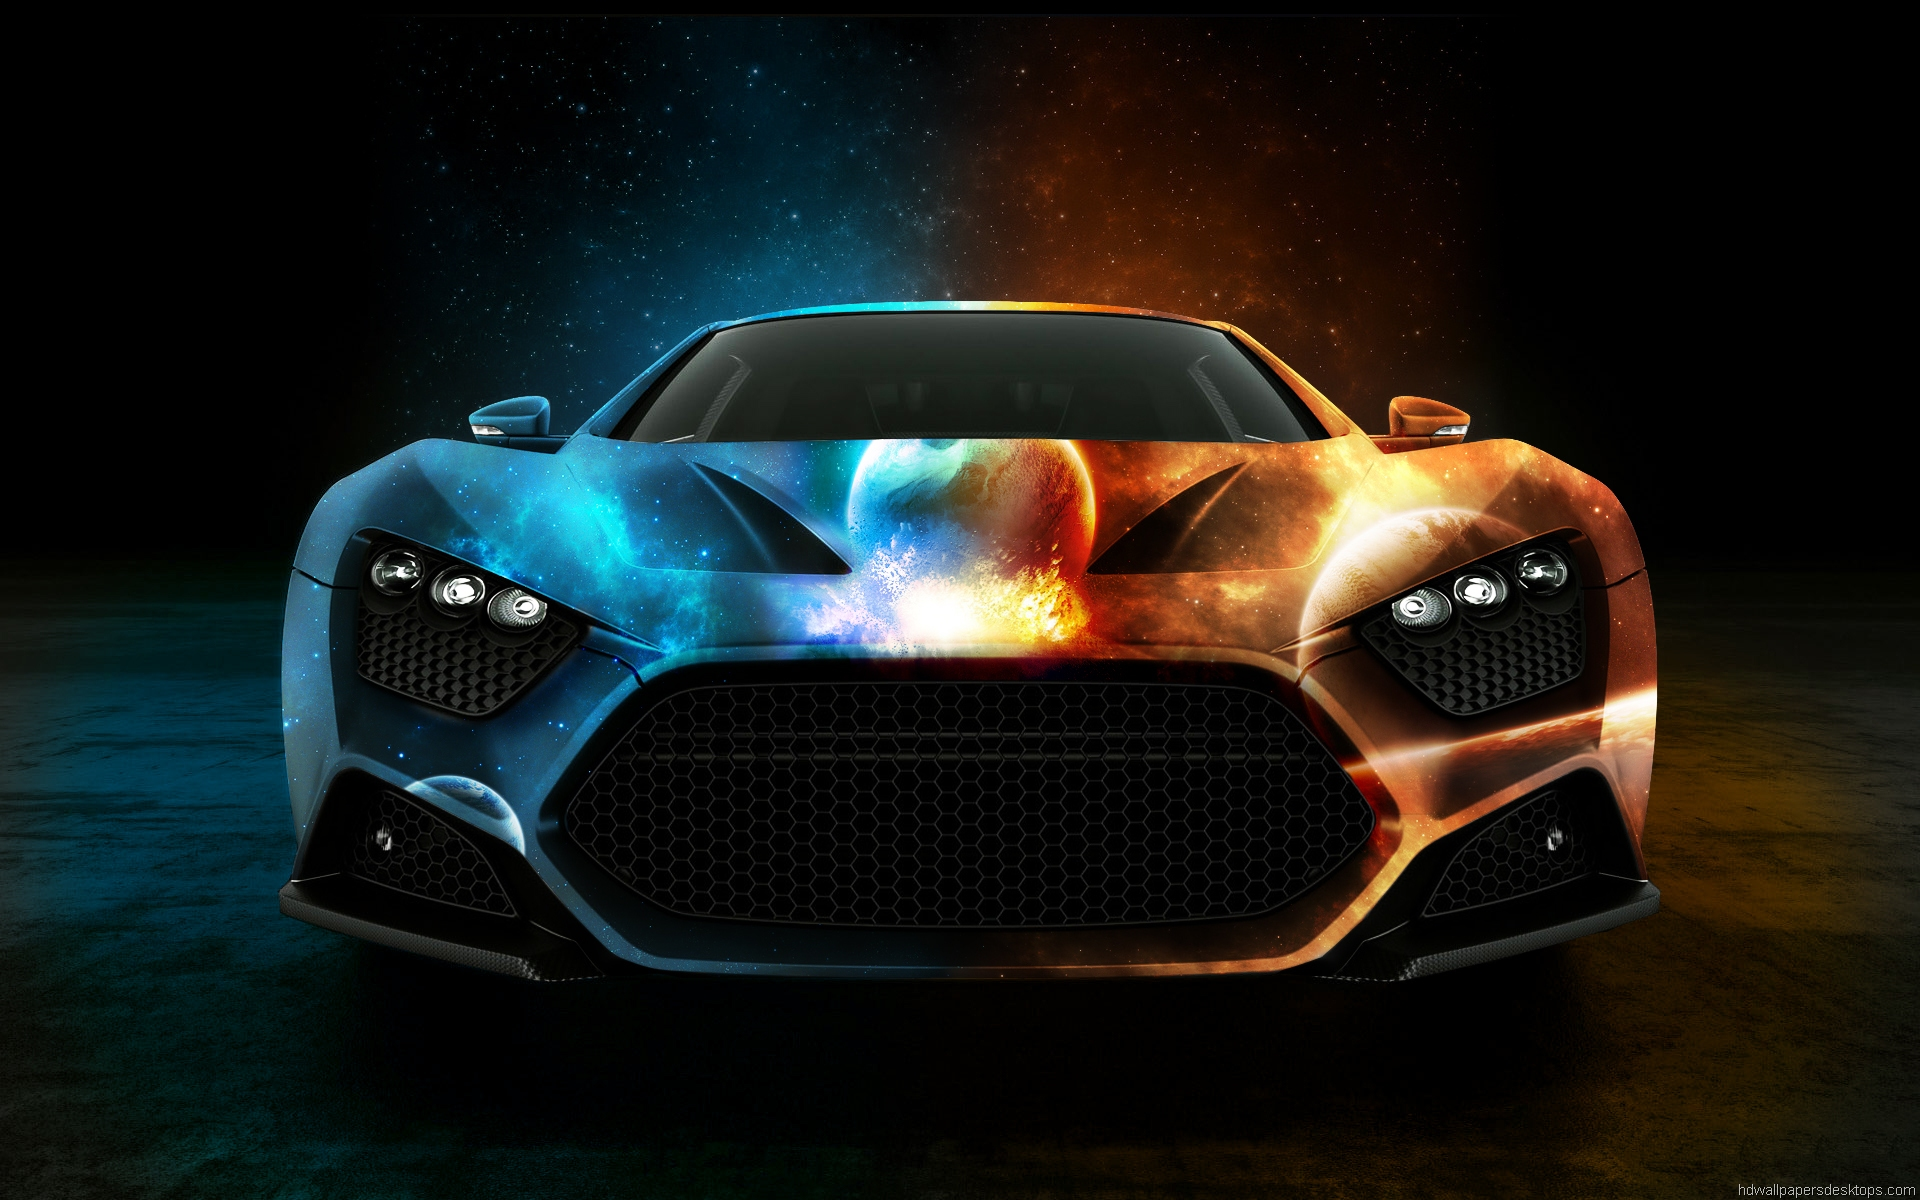 Speedy Car Wallpapers For Free Desktop Download 1920x1200